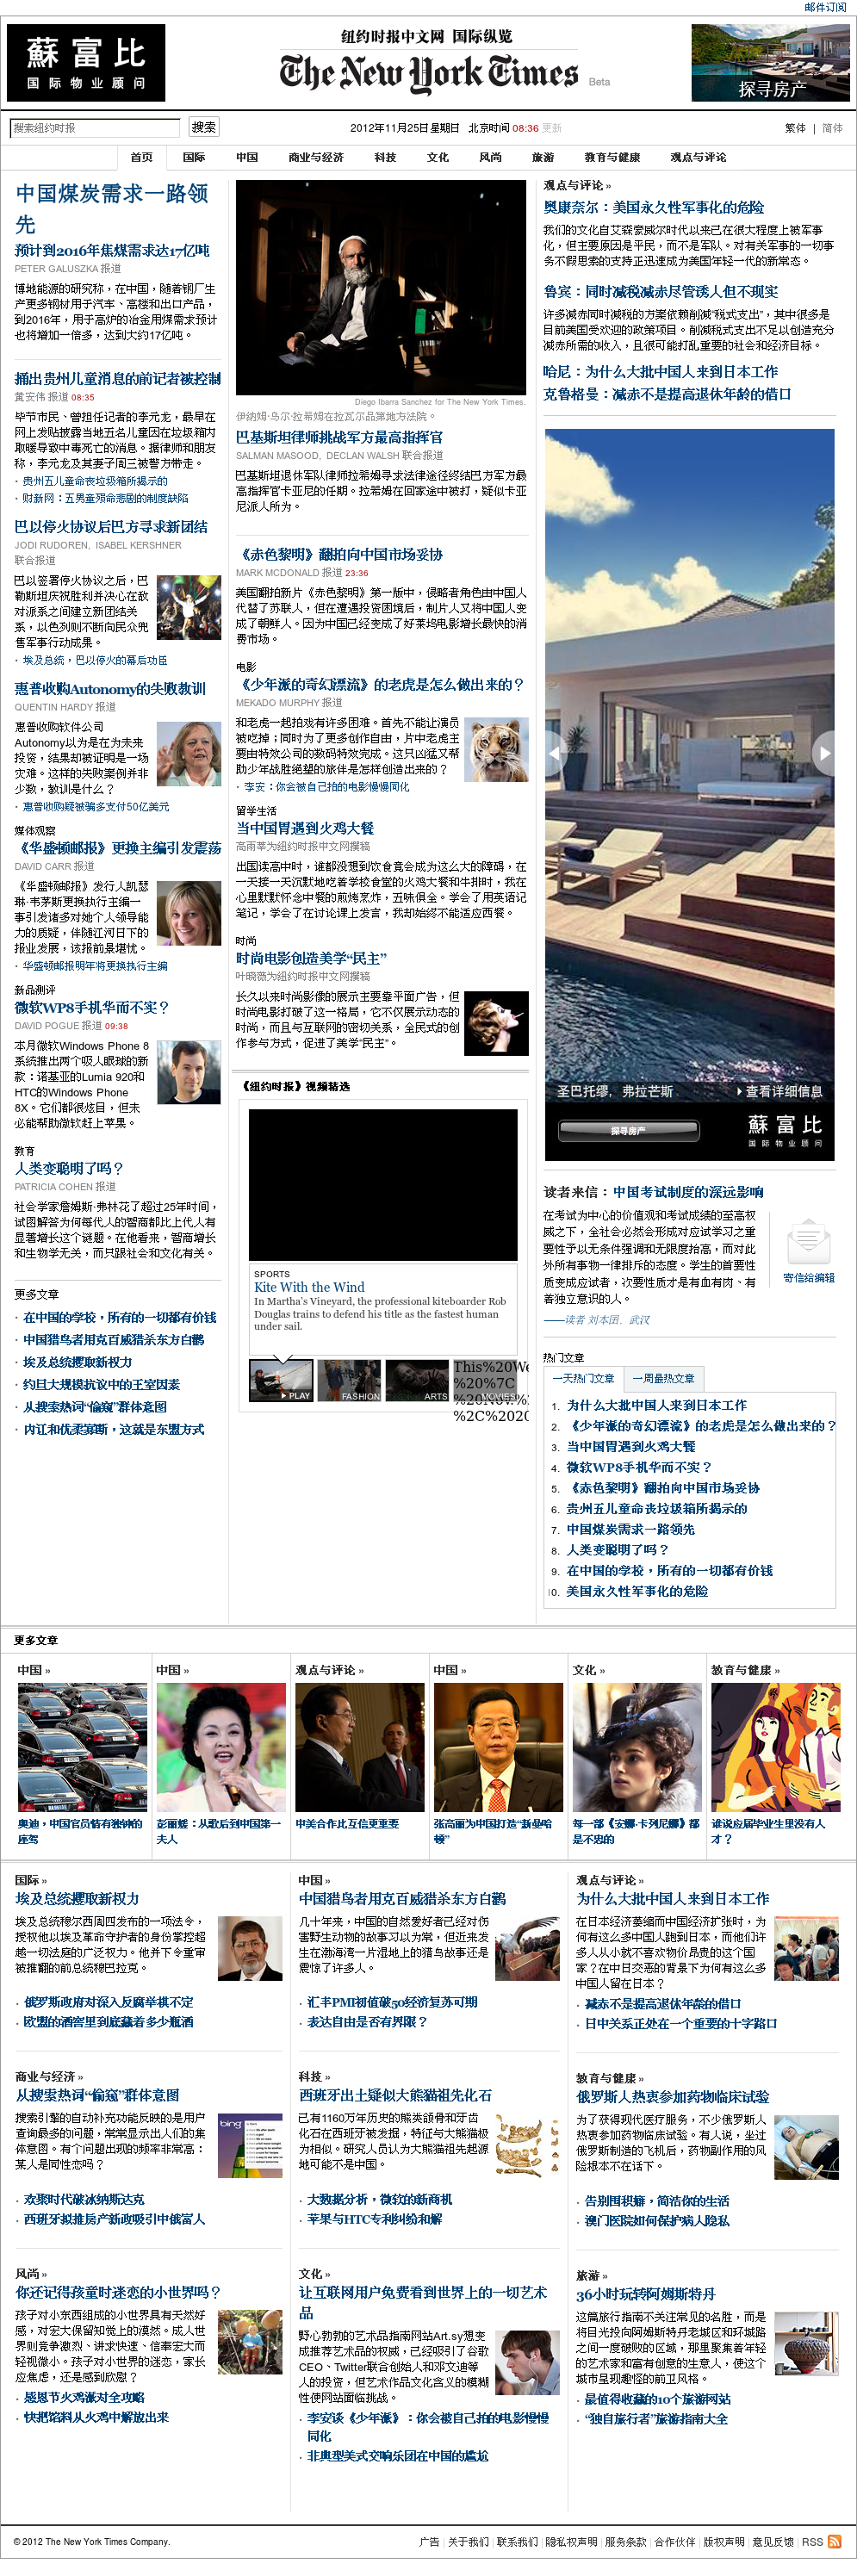 The New York Times (Chinese) at Sunday Nov. 25, 2012, 6:22 a.m. UTC